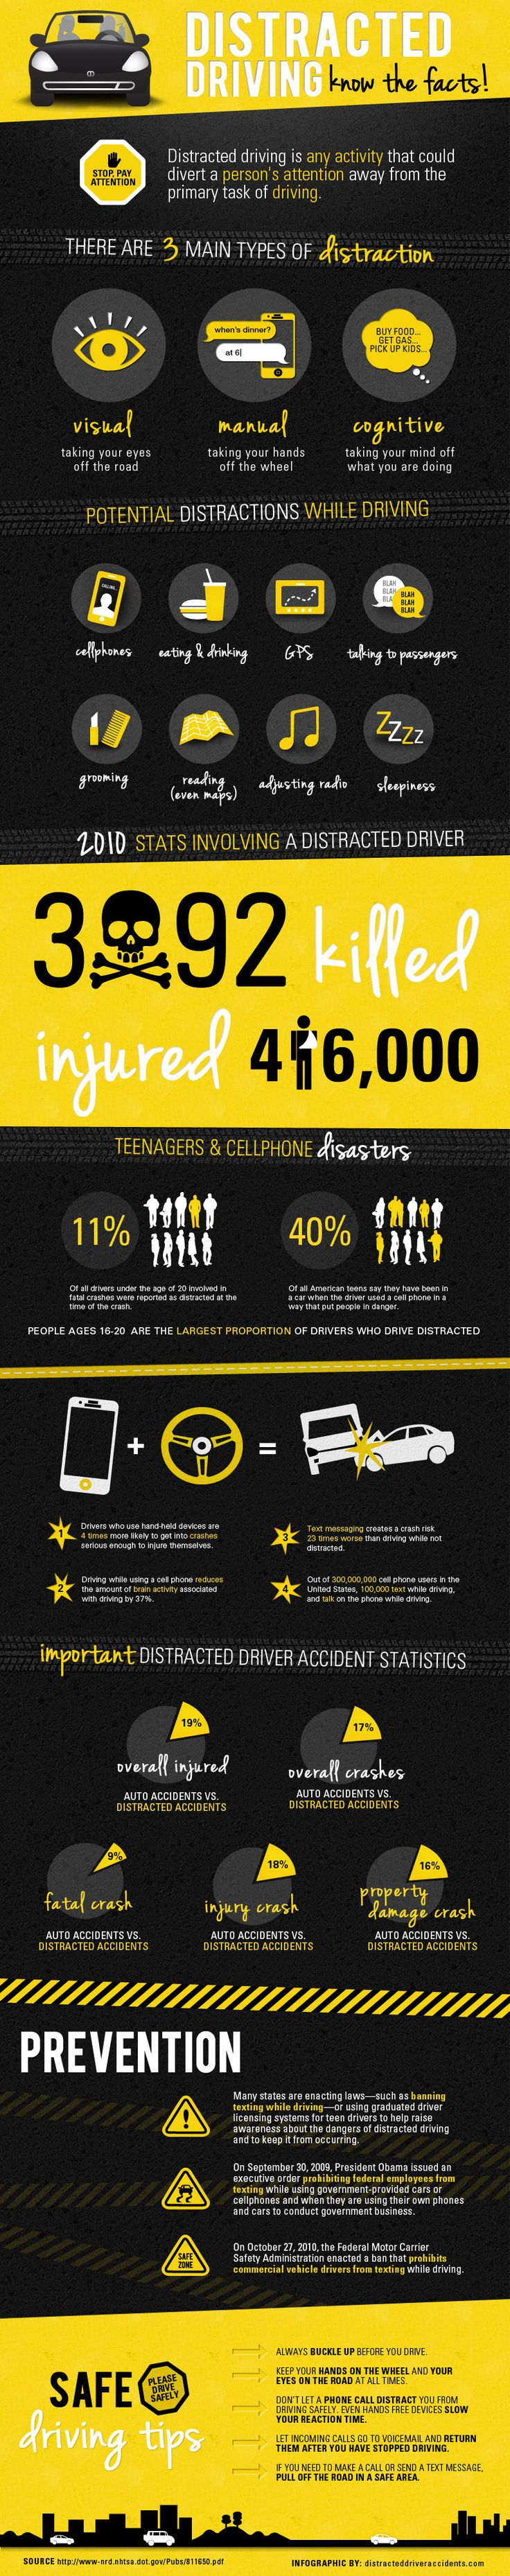 Distracted driving is defined as driving at the same time as doing another activity that is taking the attention away from driving.  Every day there a